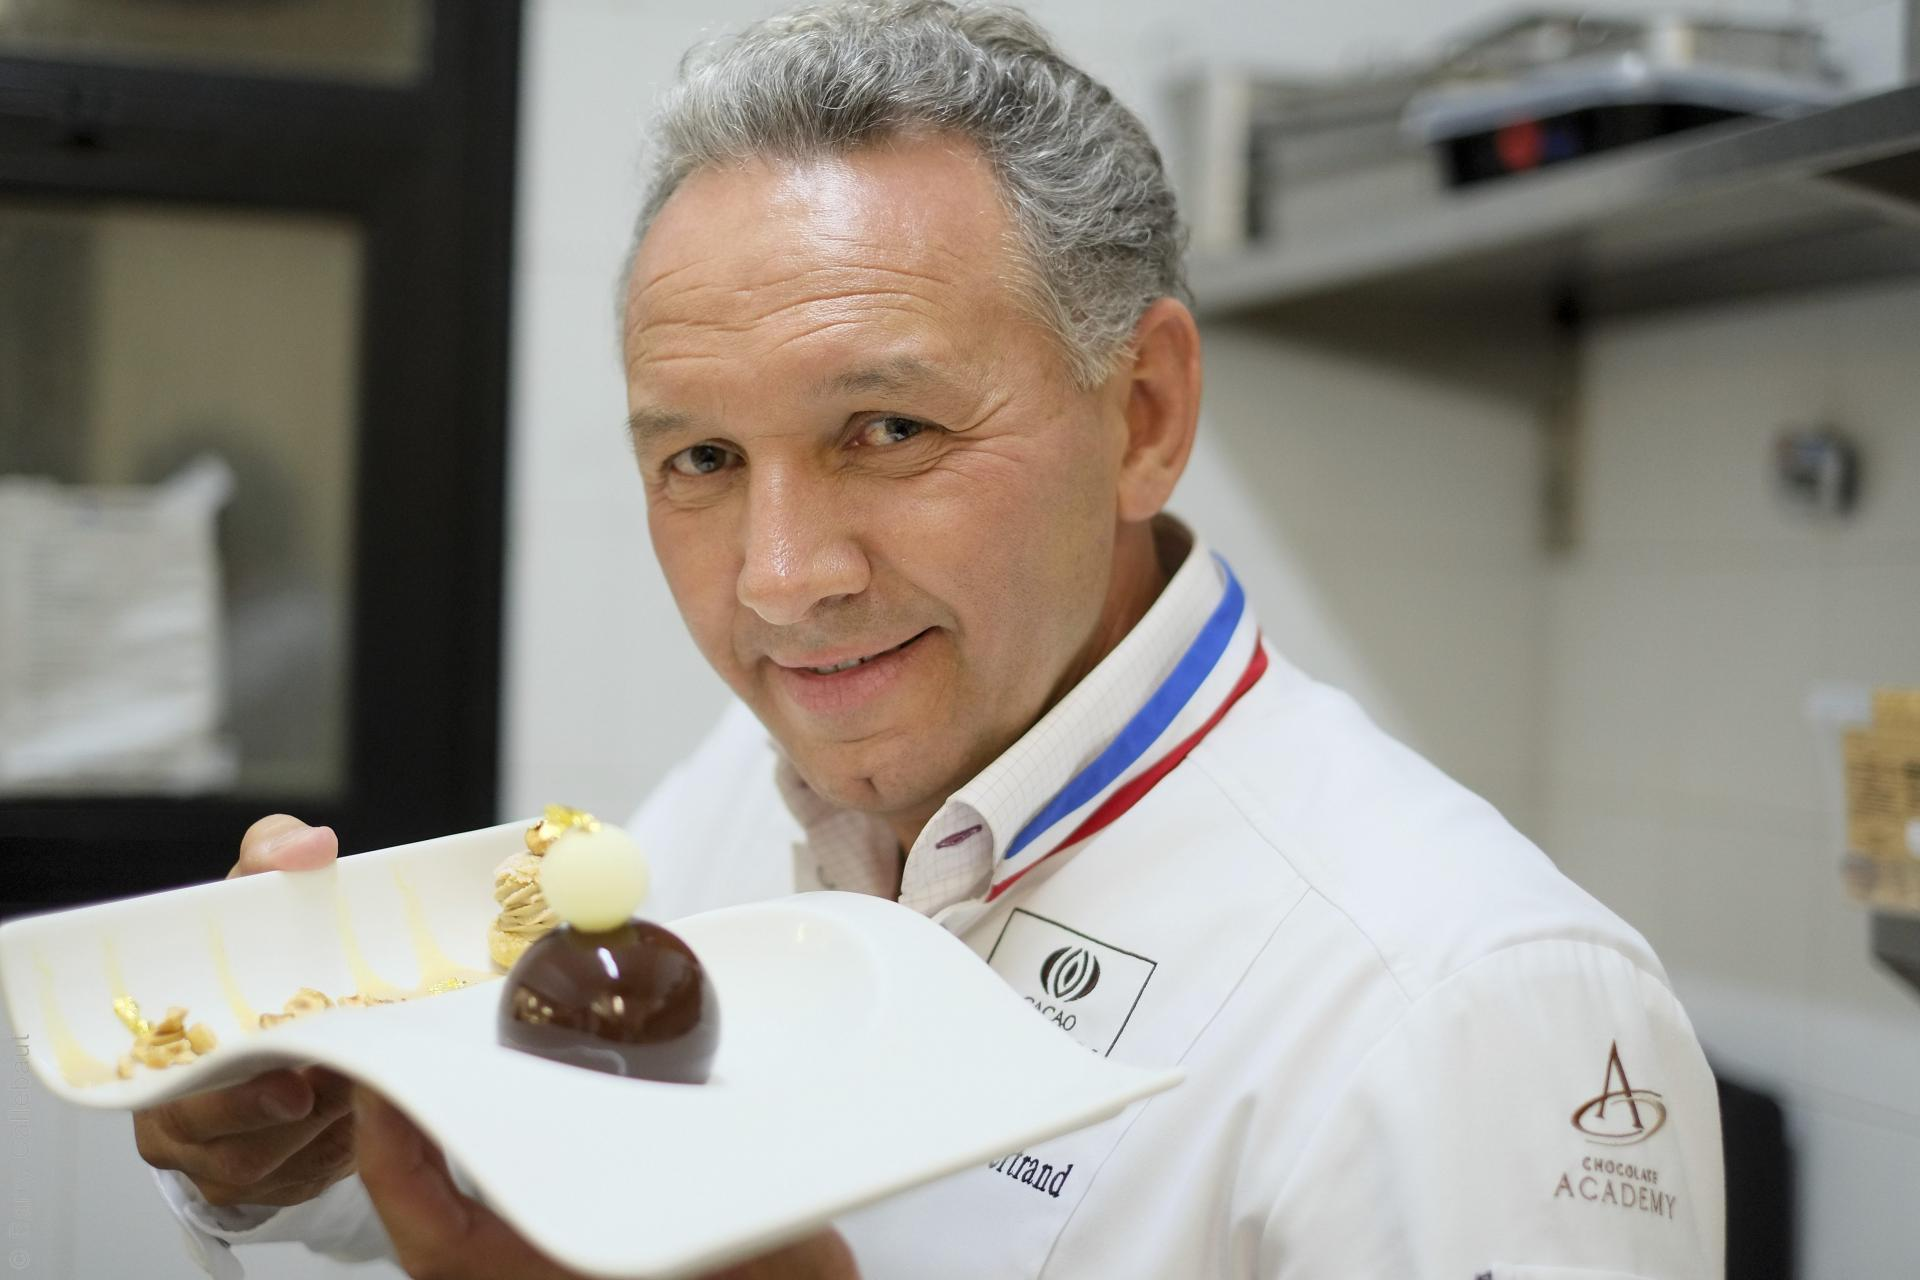 Philippe Bertrand, MOF, with his dessert creation - the Paris-Brest.